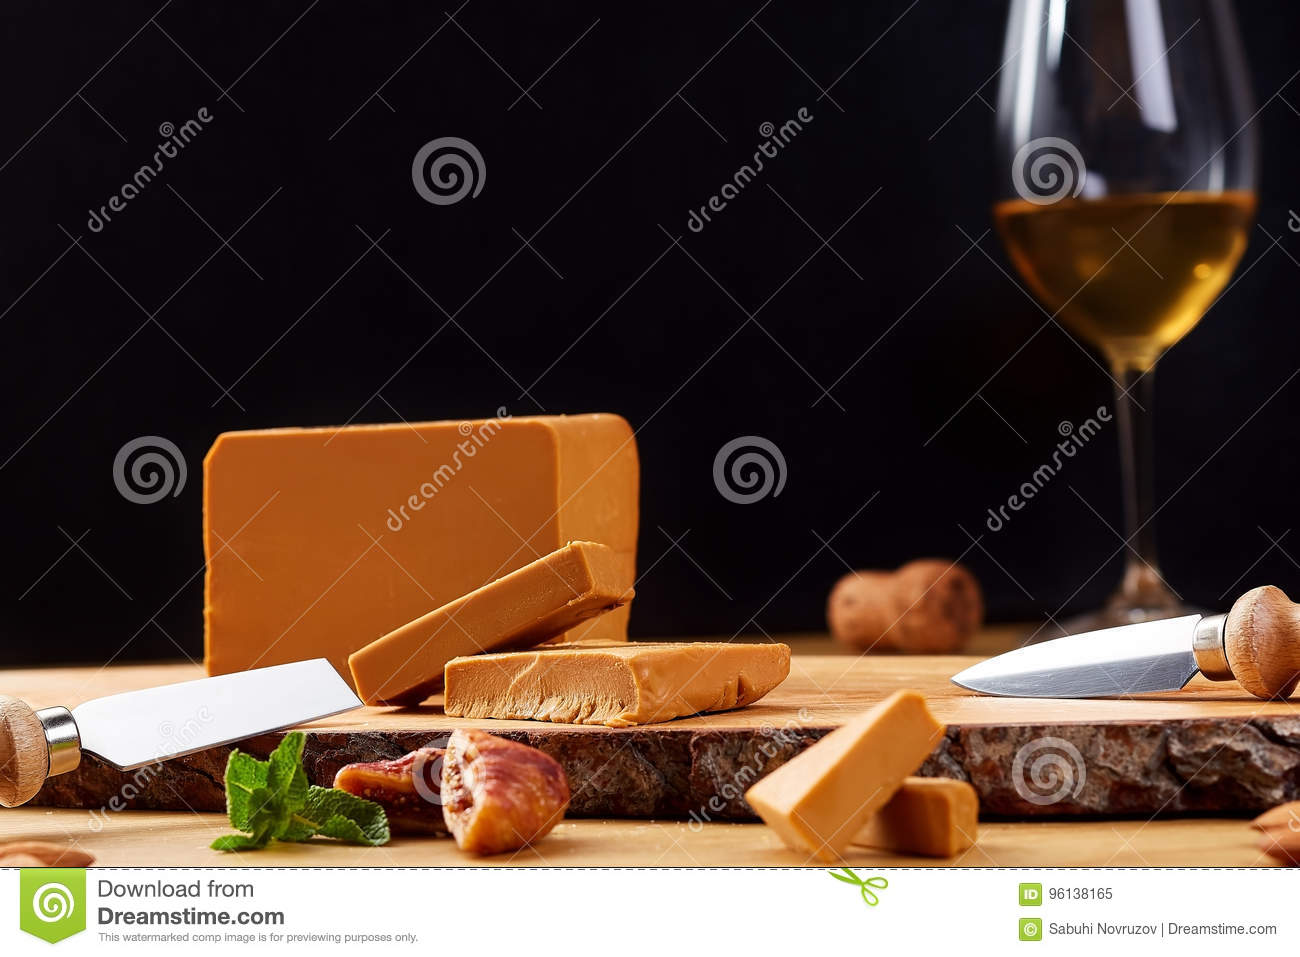 Close-up Of A Norwegian Gudbrandsdalen Cheese With Glass Of